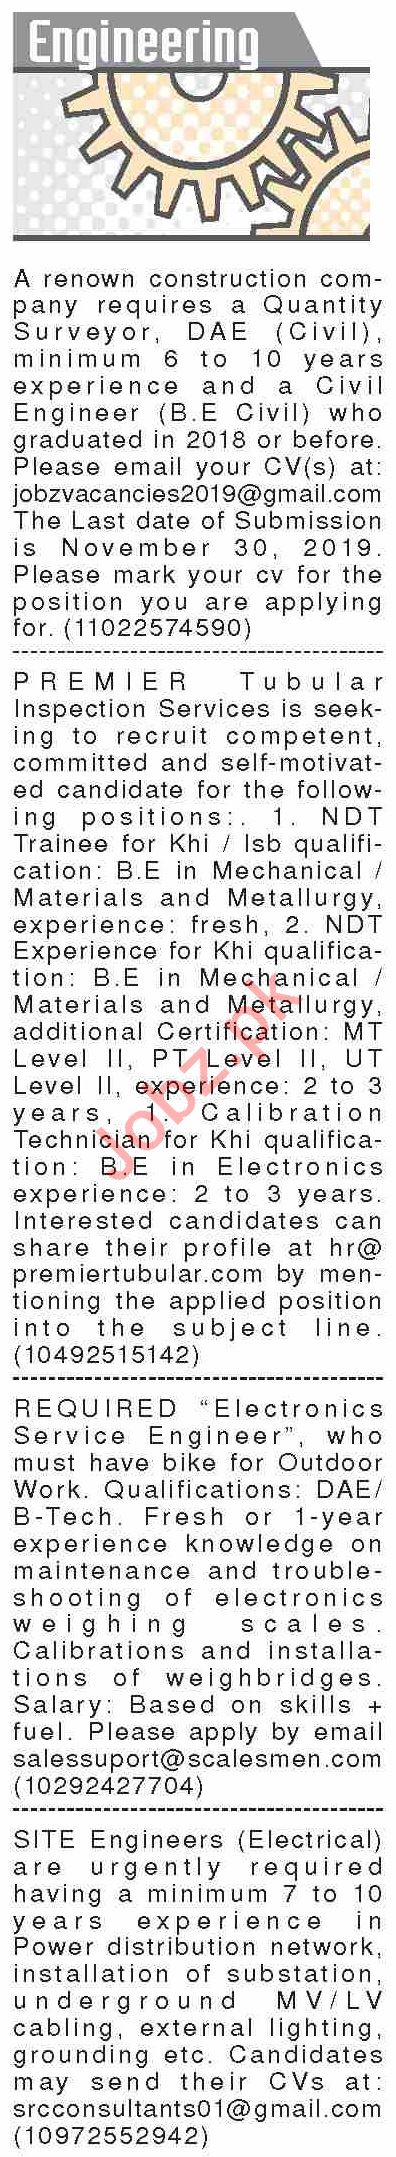 Dawn Sunday Classified Ads 17th Nov 2019 for Engineering